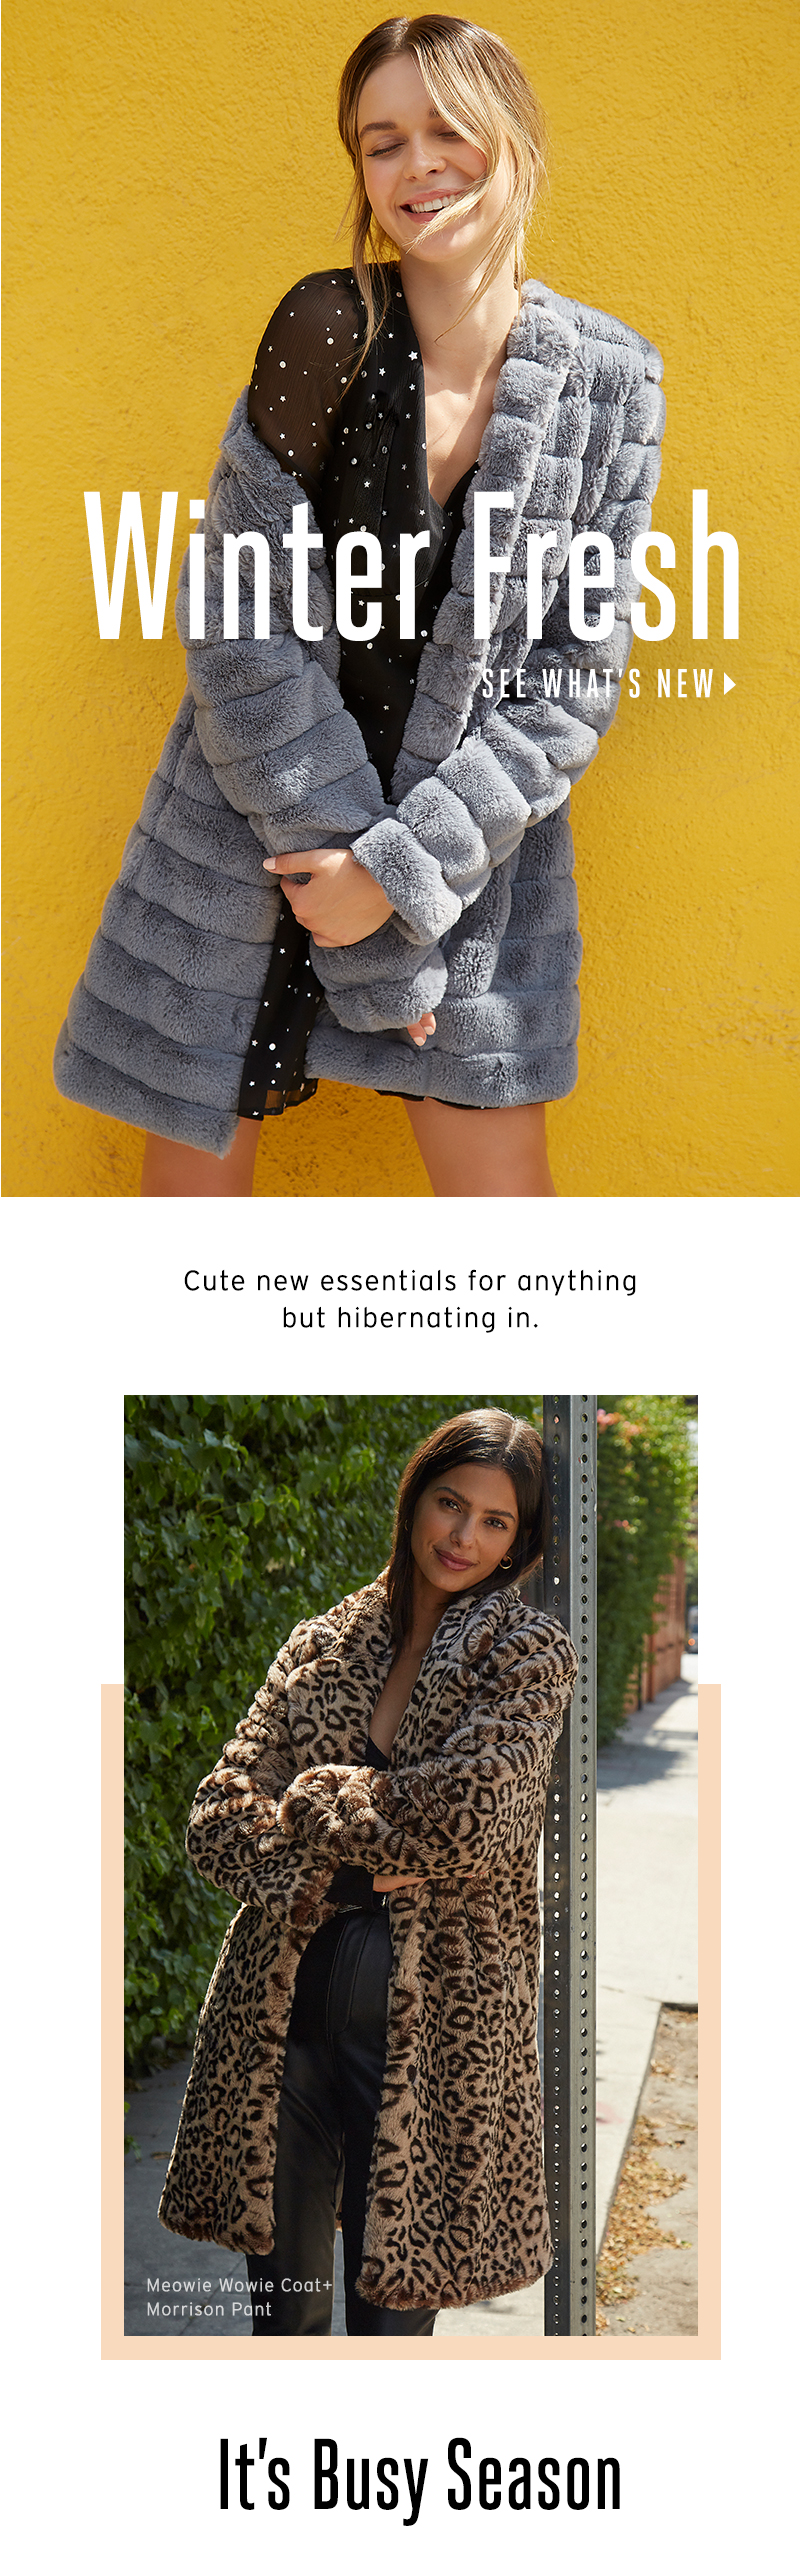 Winter Fresh. Cute new essentials for anything but hibernating in. See What's New.